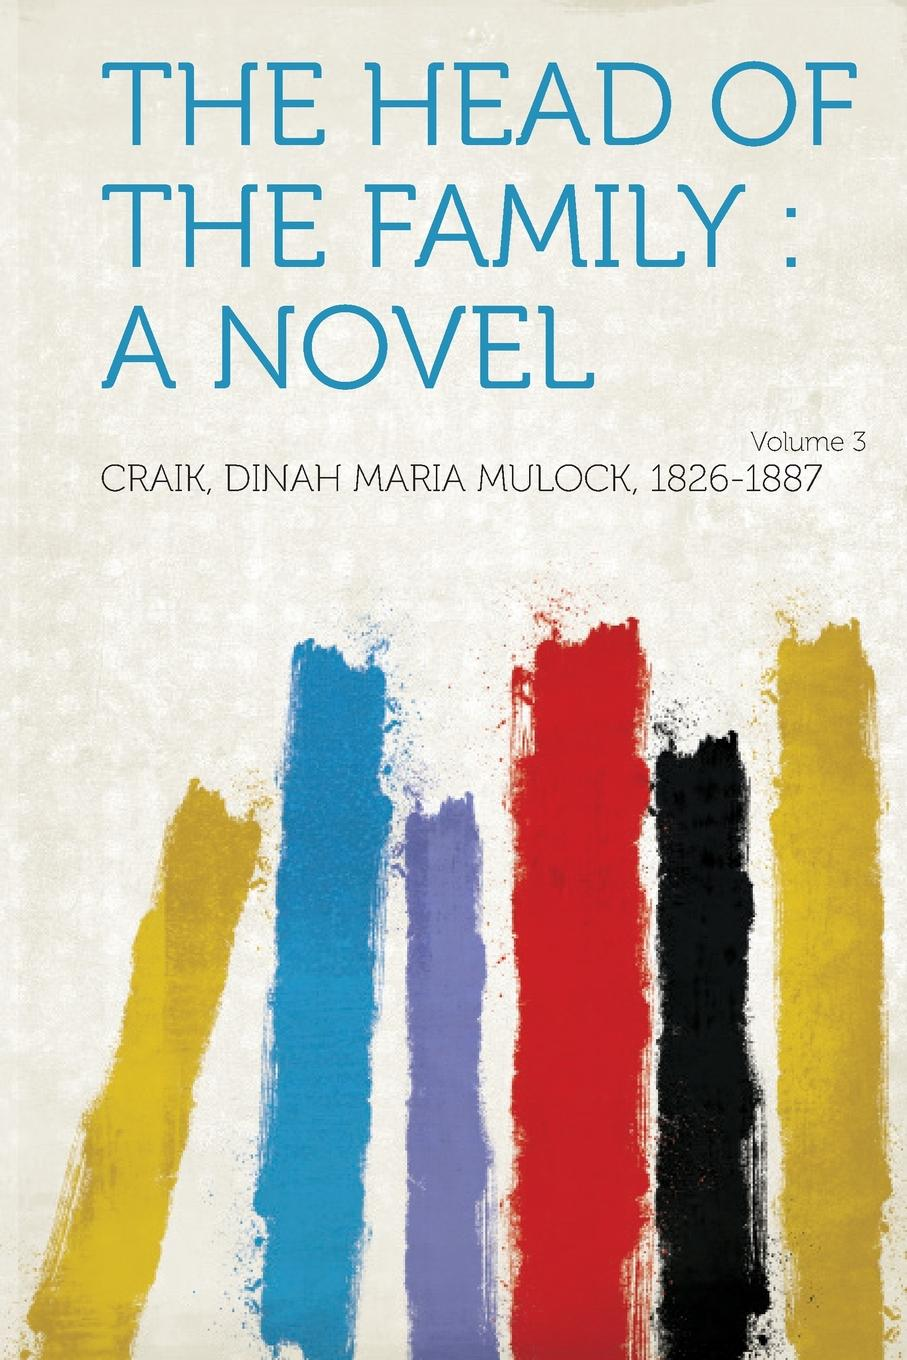 The Head of the Family. A Novel Volume 3